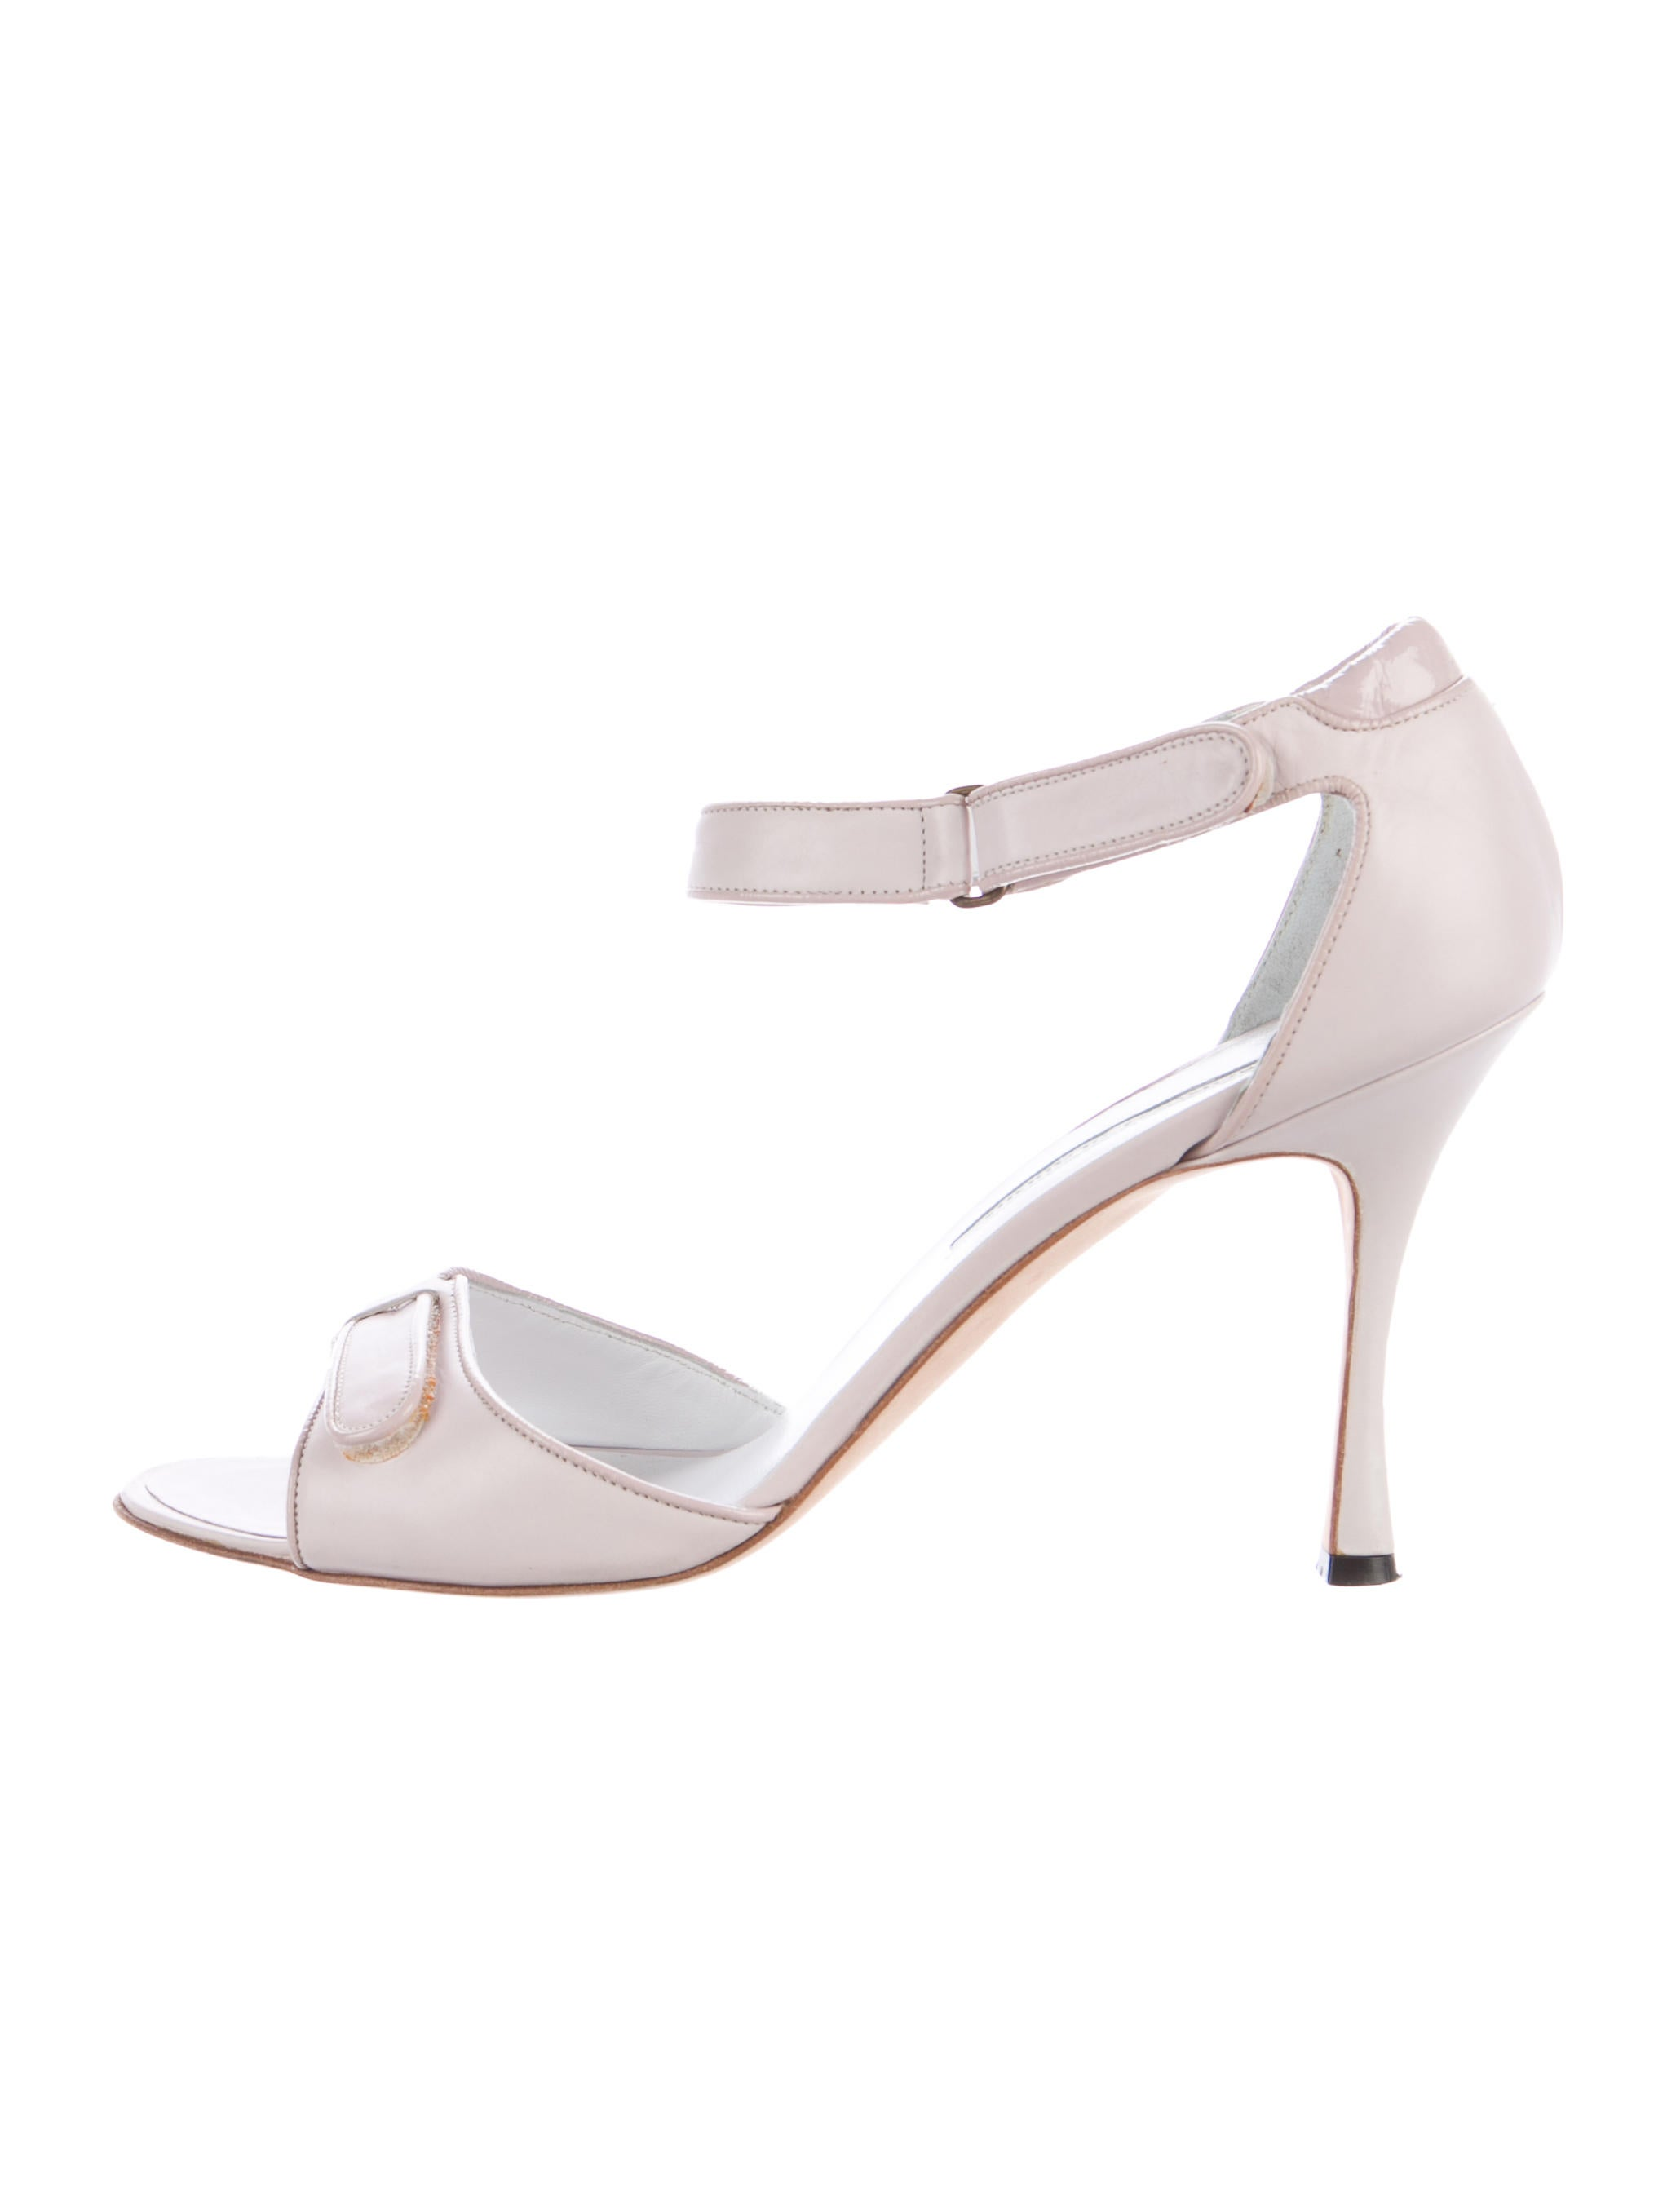 new arrival cheap price find great Manolo Blahnik Leather Velcro Sandals amazing price cheap price 1WejW3JR